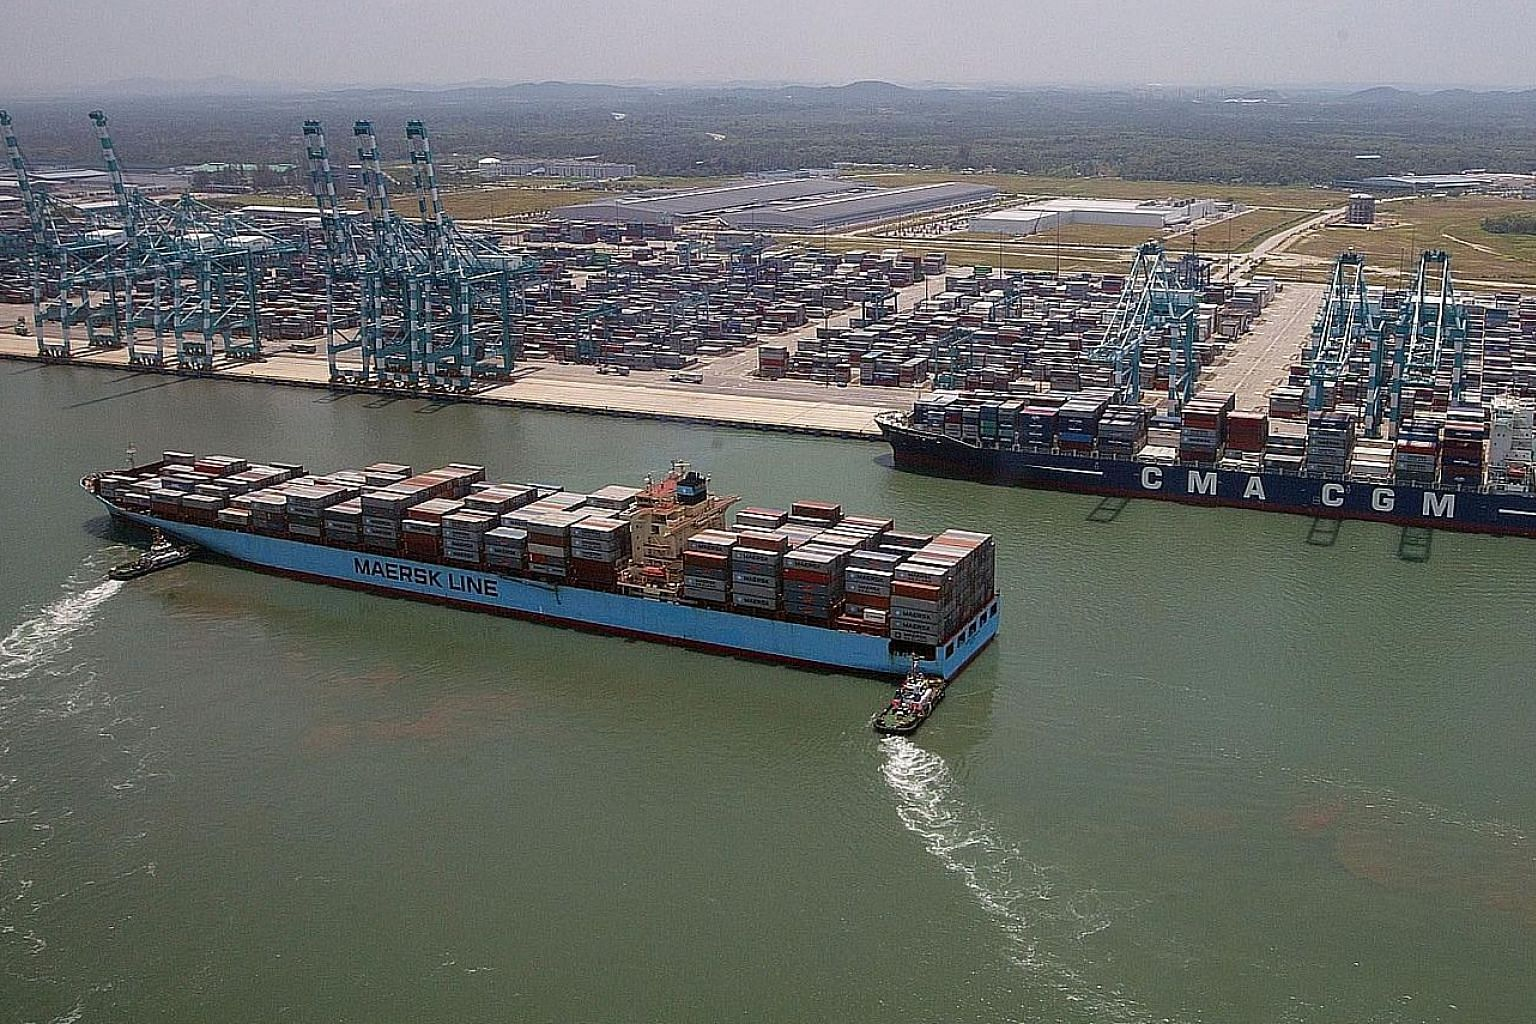 The Port of Tanjung Pelepas has a current capacity of 12.5 million TEUs. It is seeking to accommodate 30 million TEUs by 2030. PHOTO: THE STAR/ASIA NEWS NETWORK